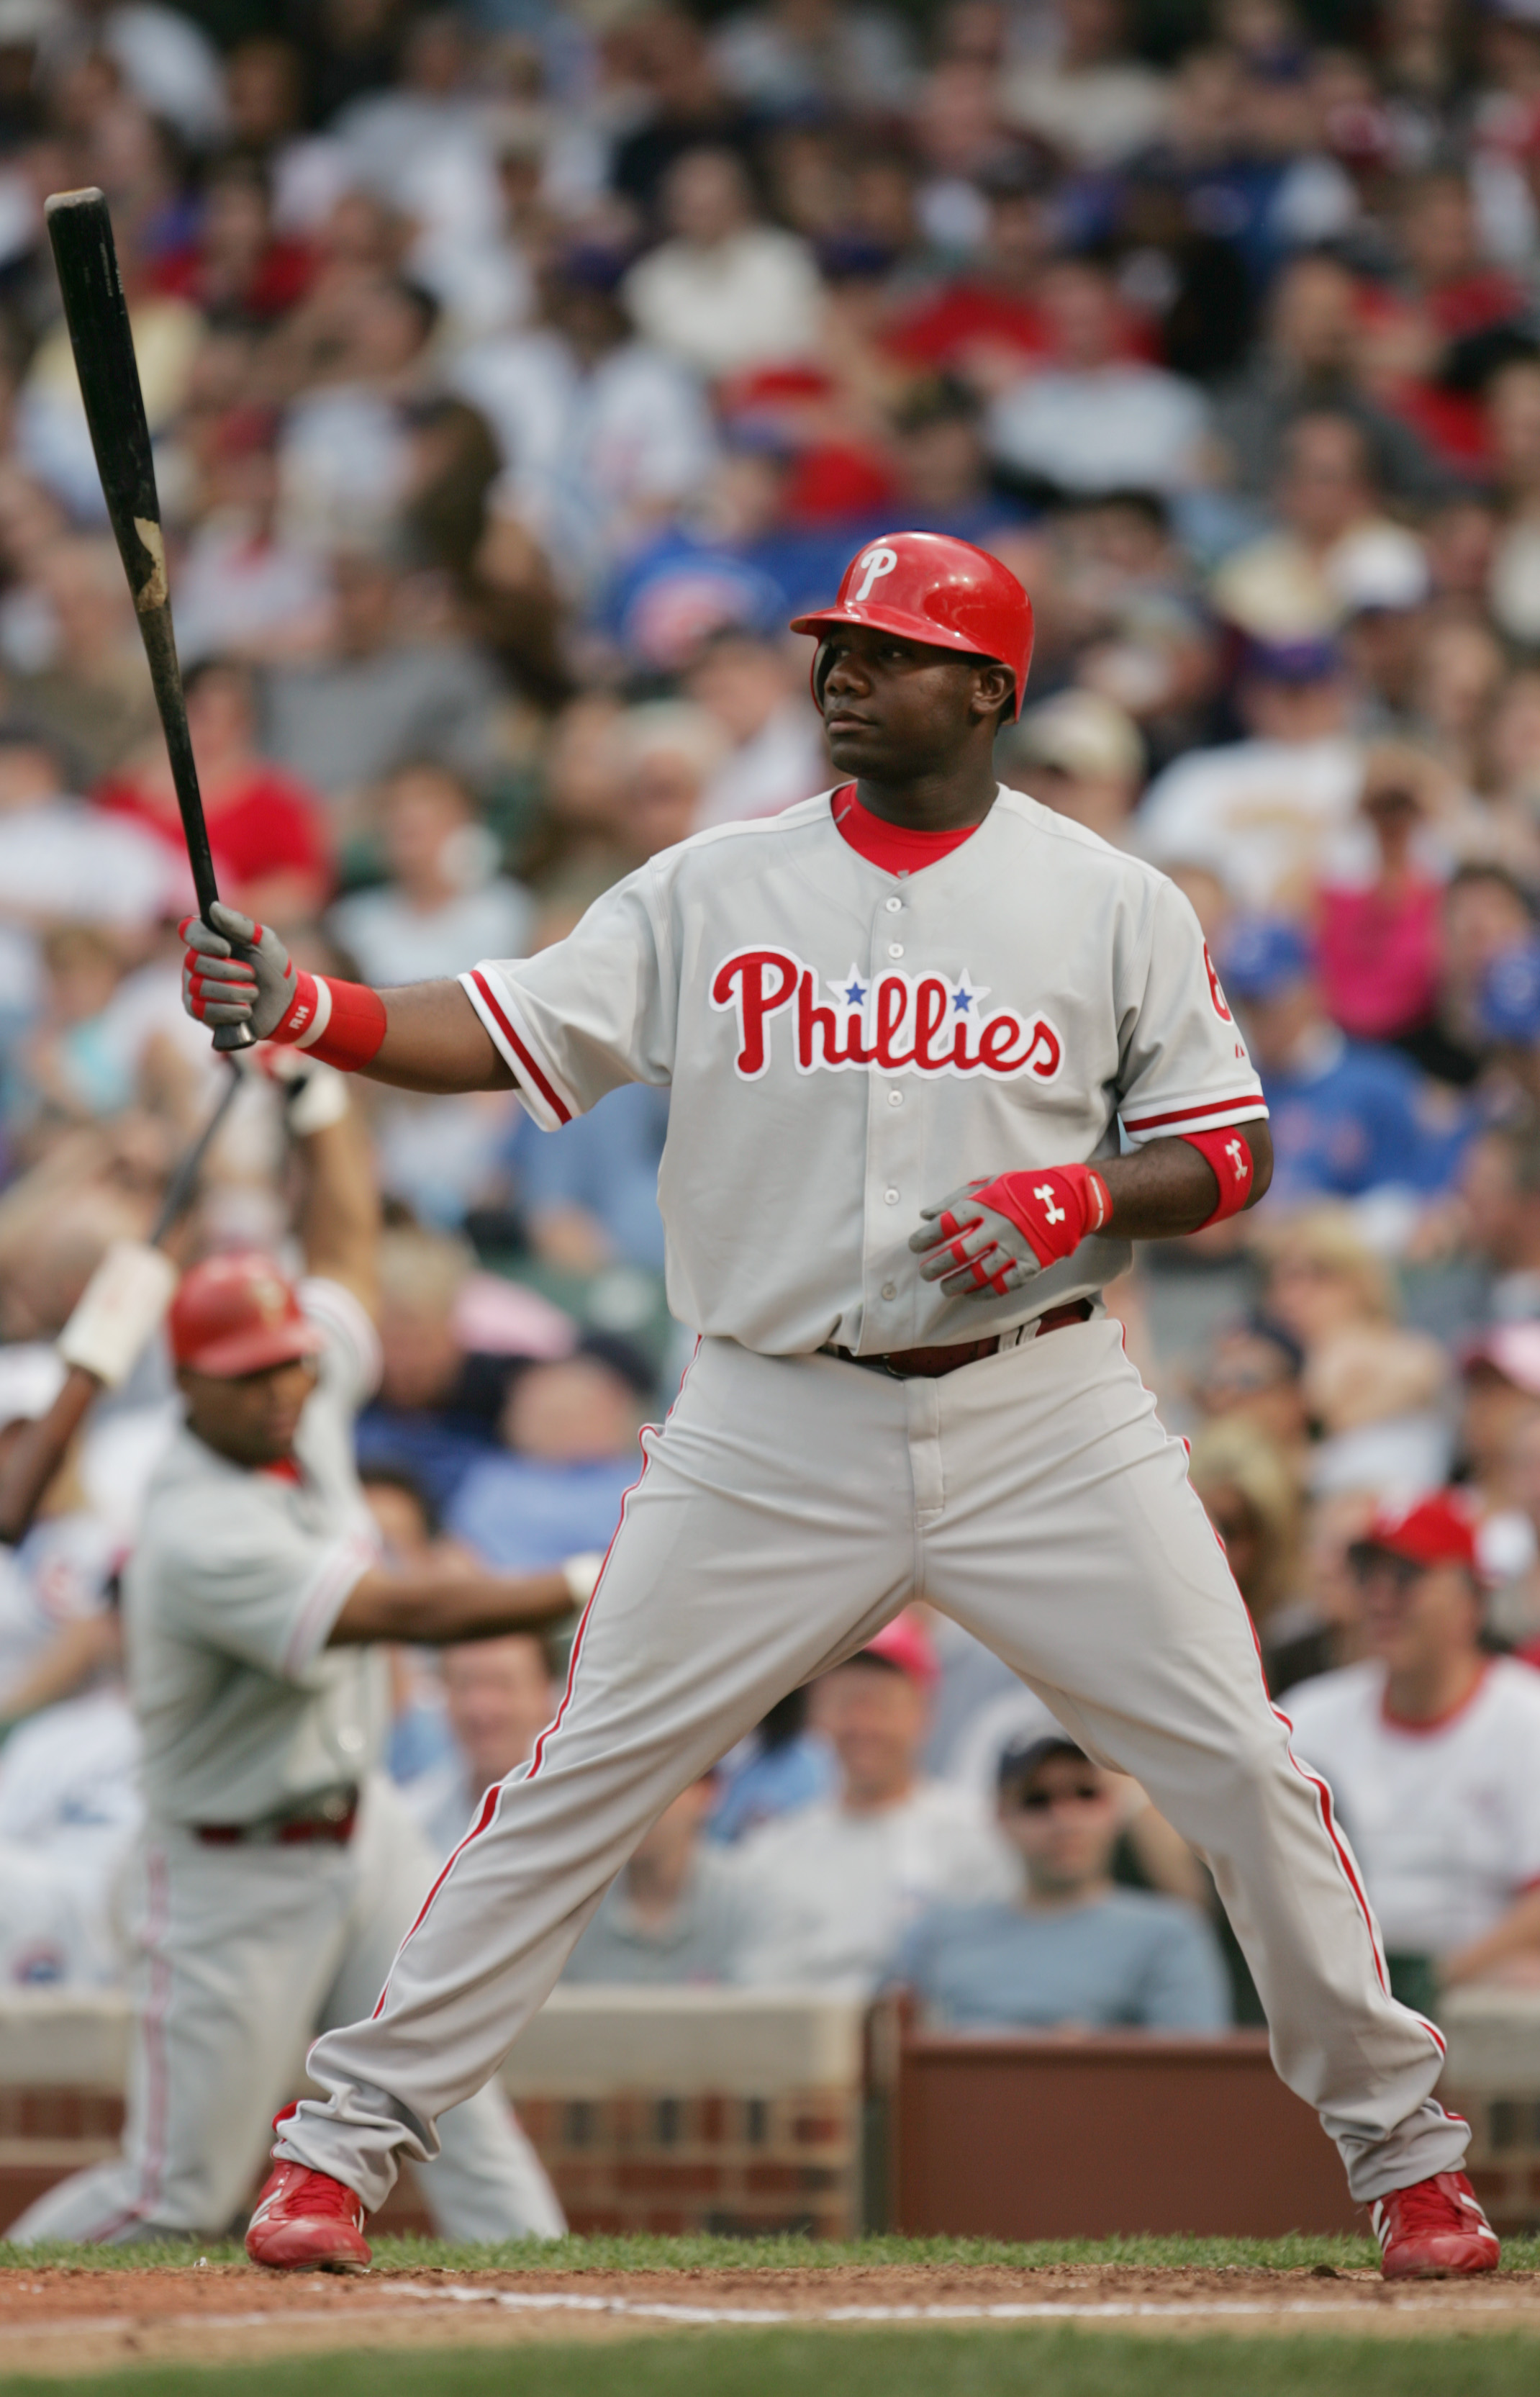 Ryan Howard has become one of the most feared hitters in the game, in short amount of time